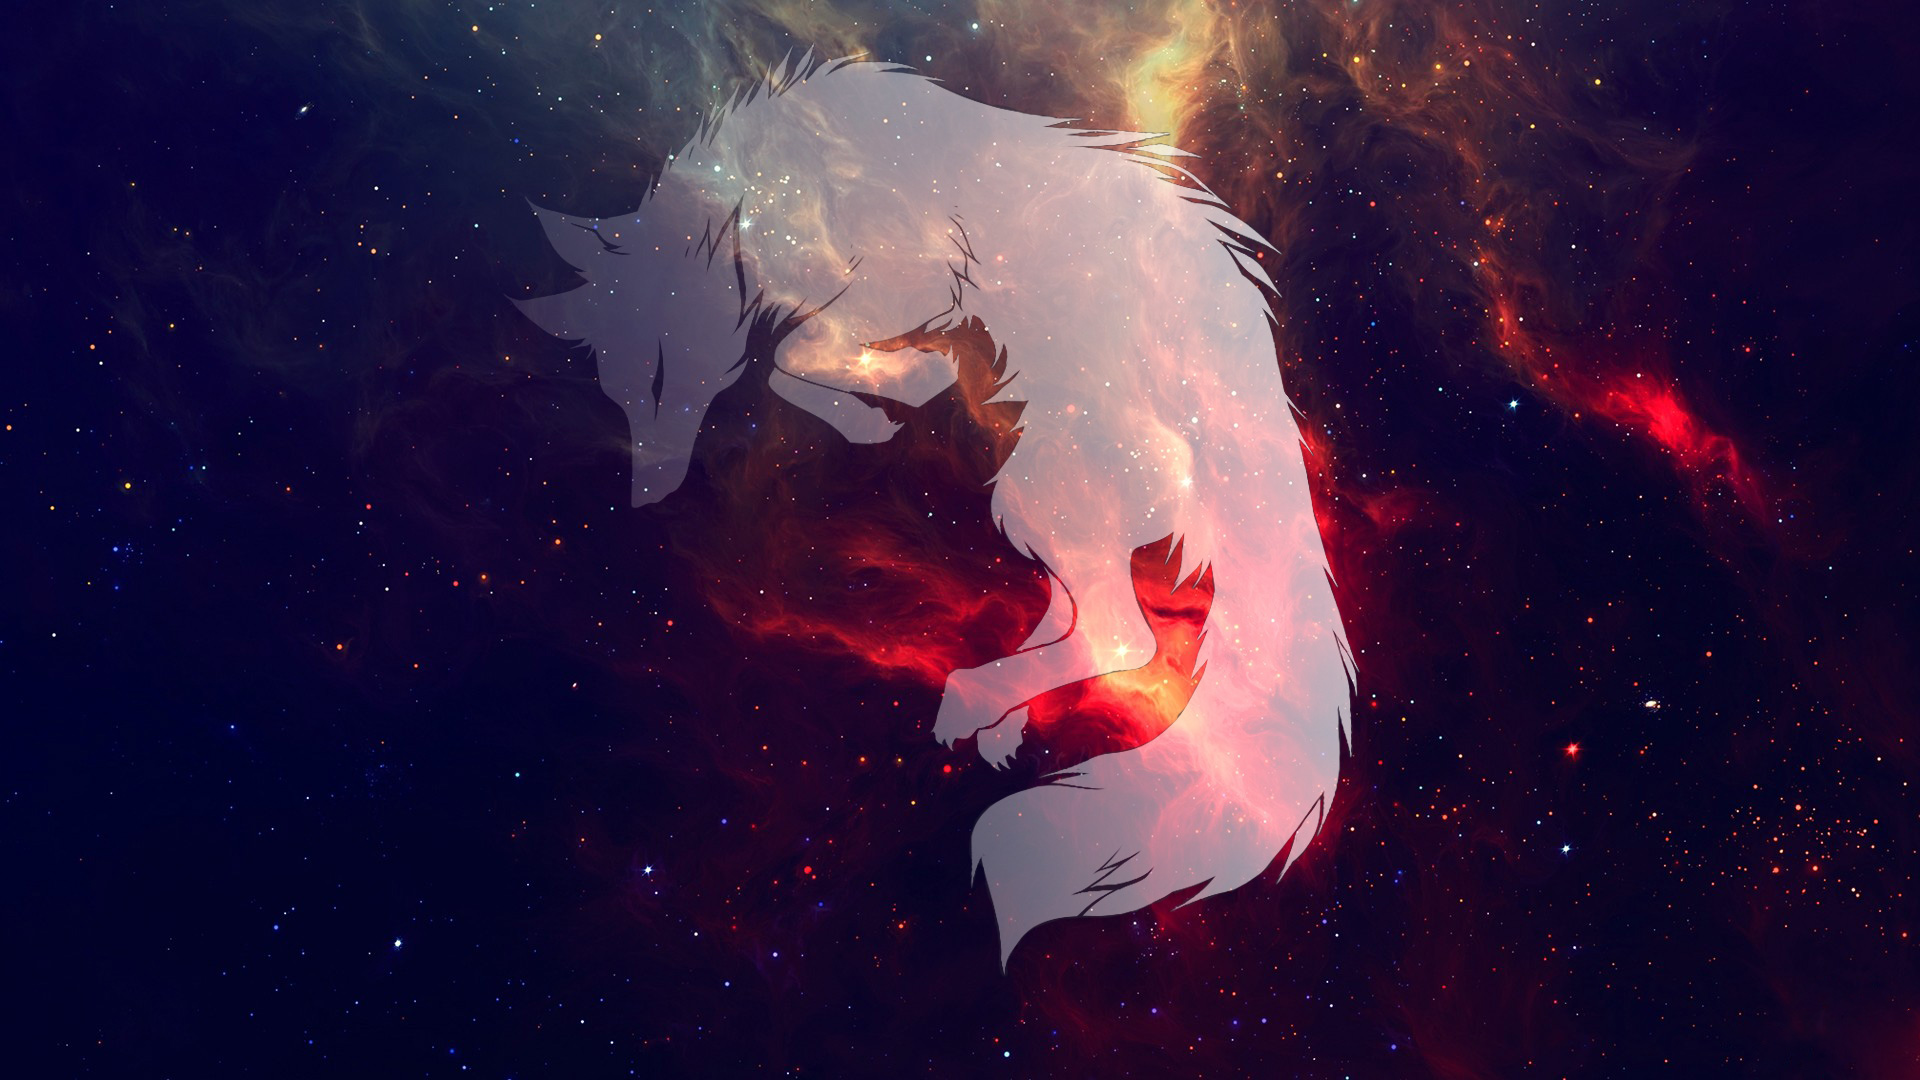 Wolf Fantasy Art Space Hd Artist 4k Wallpapers Images